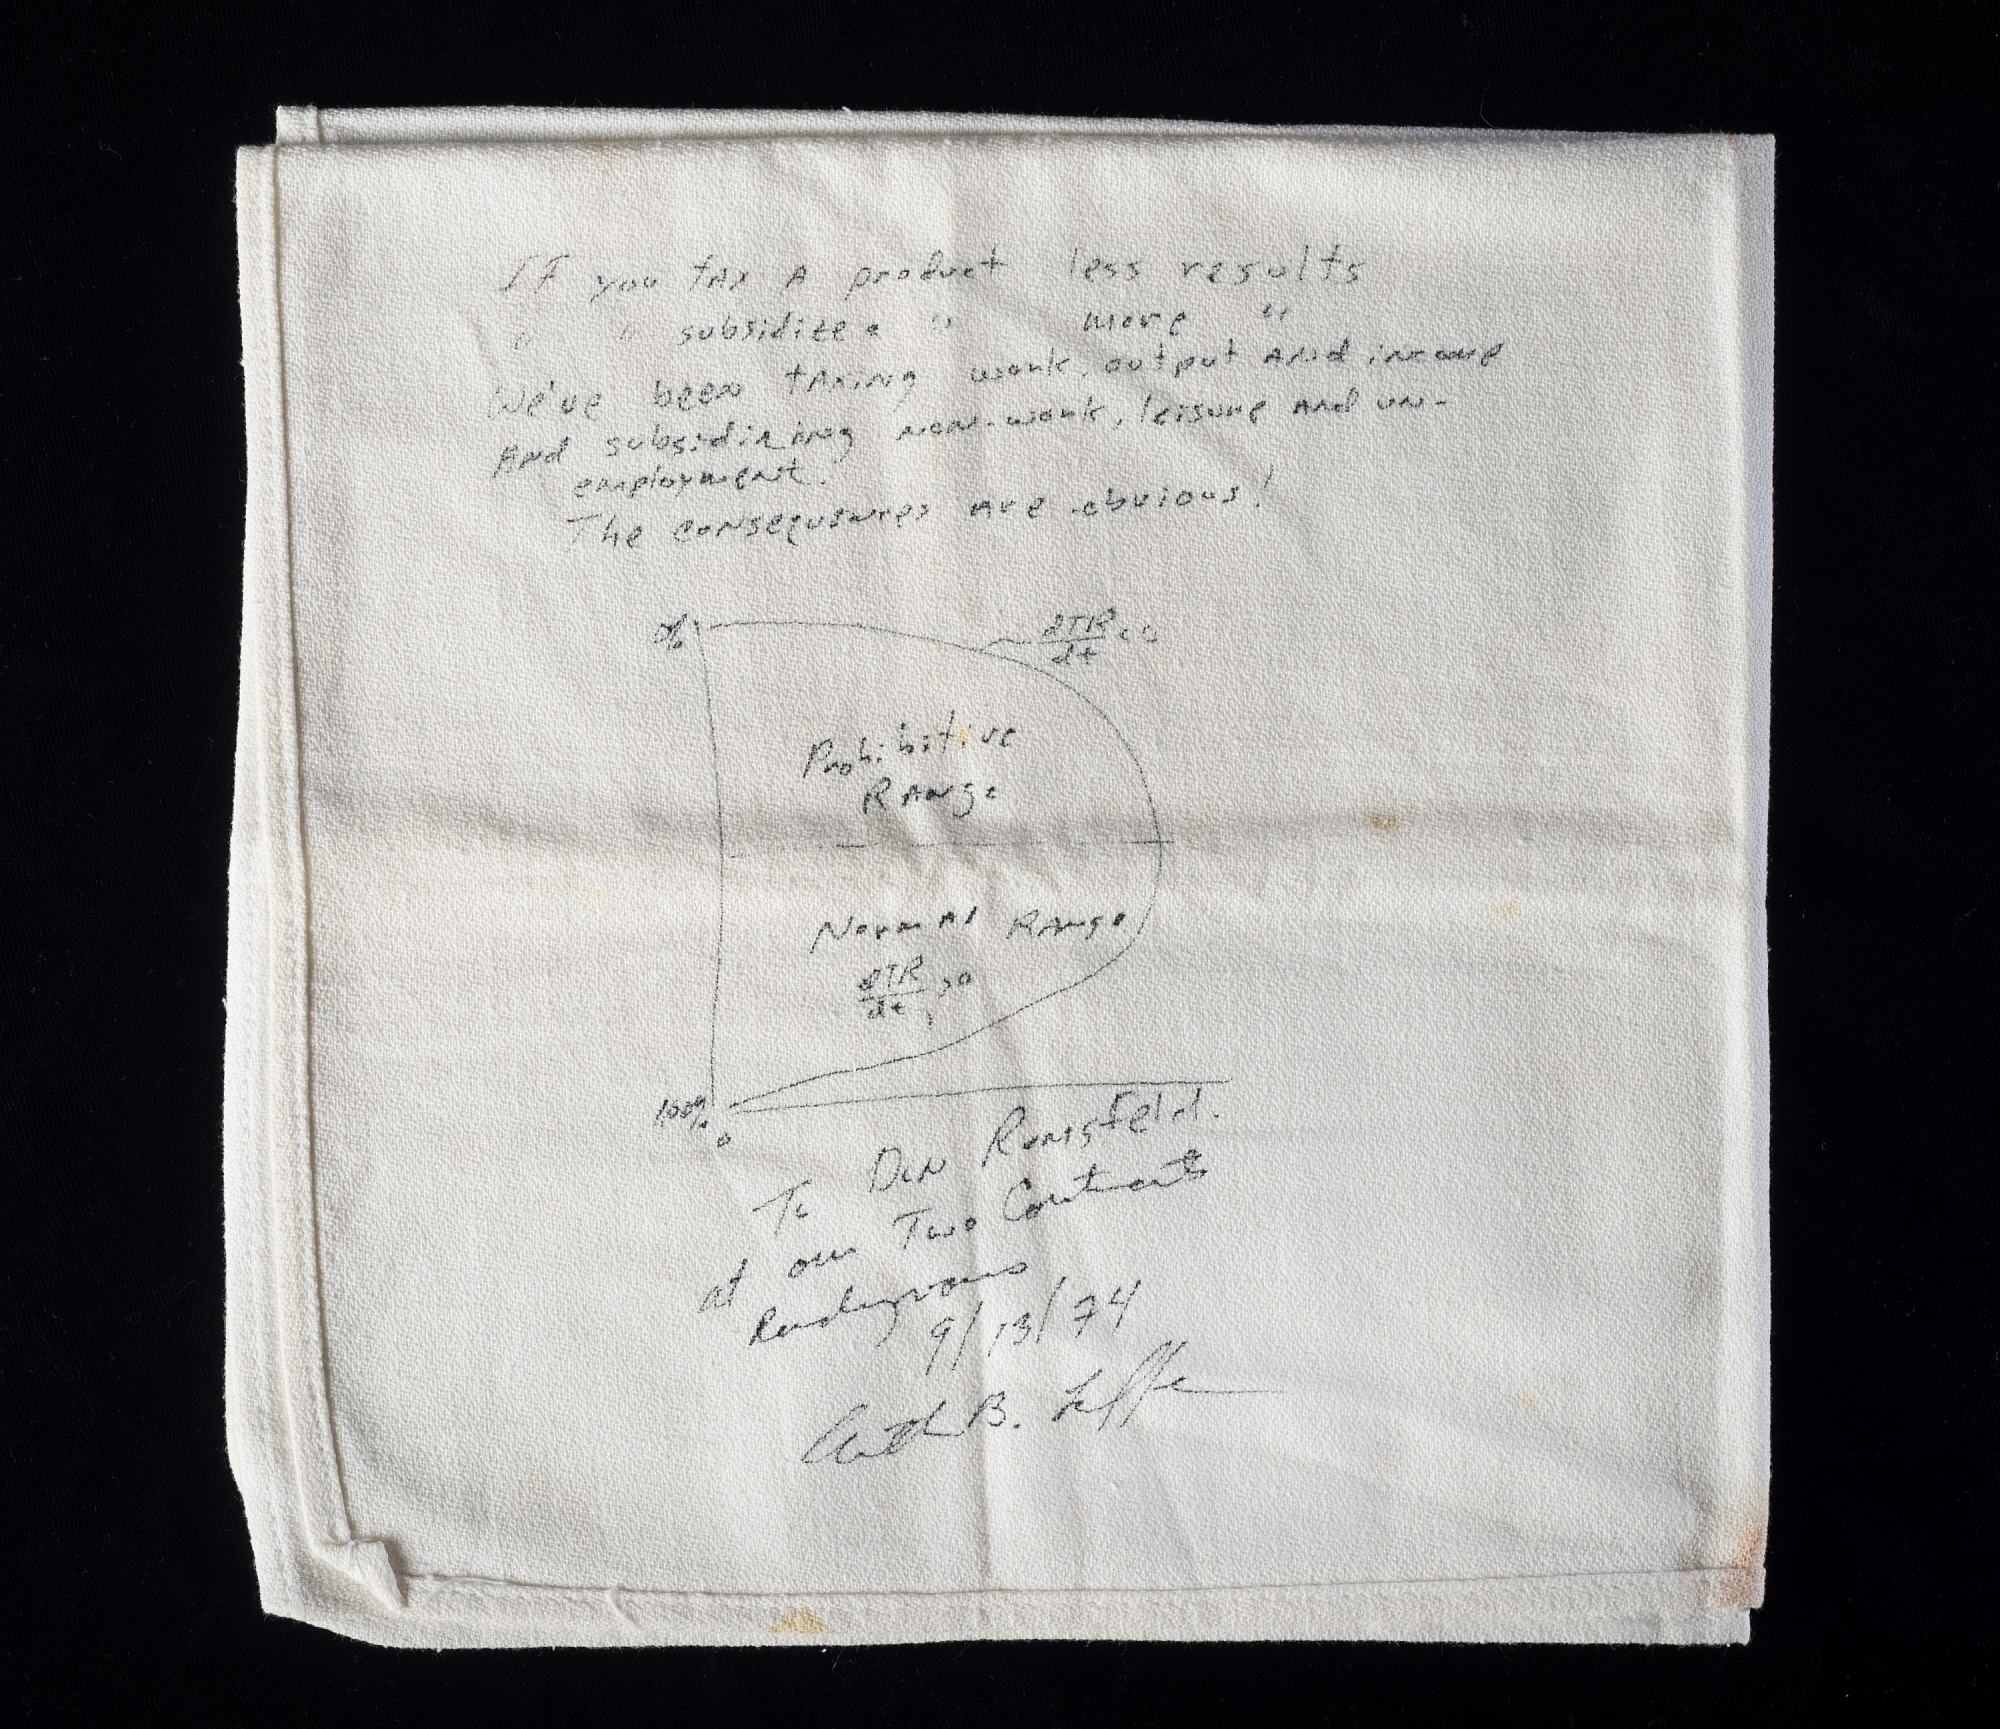 economist s view narrative economics and the laffer curve did laffer really pull out a pen and start writing on a cloth napkin at a fancy restaurant so that jude wanniski could take the napkin away him